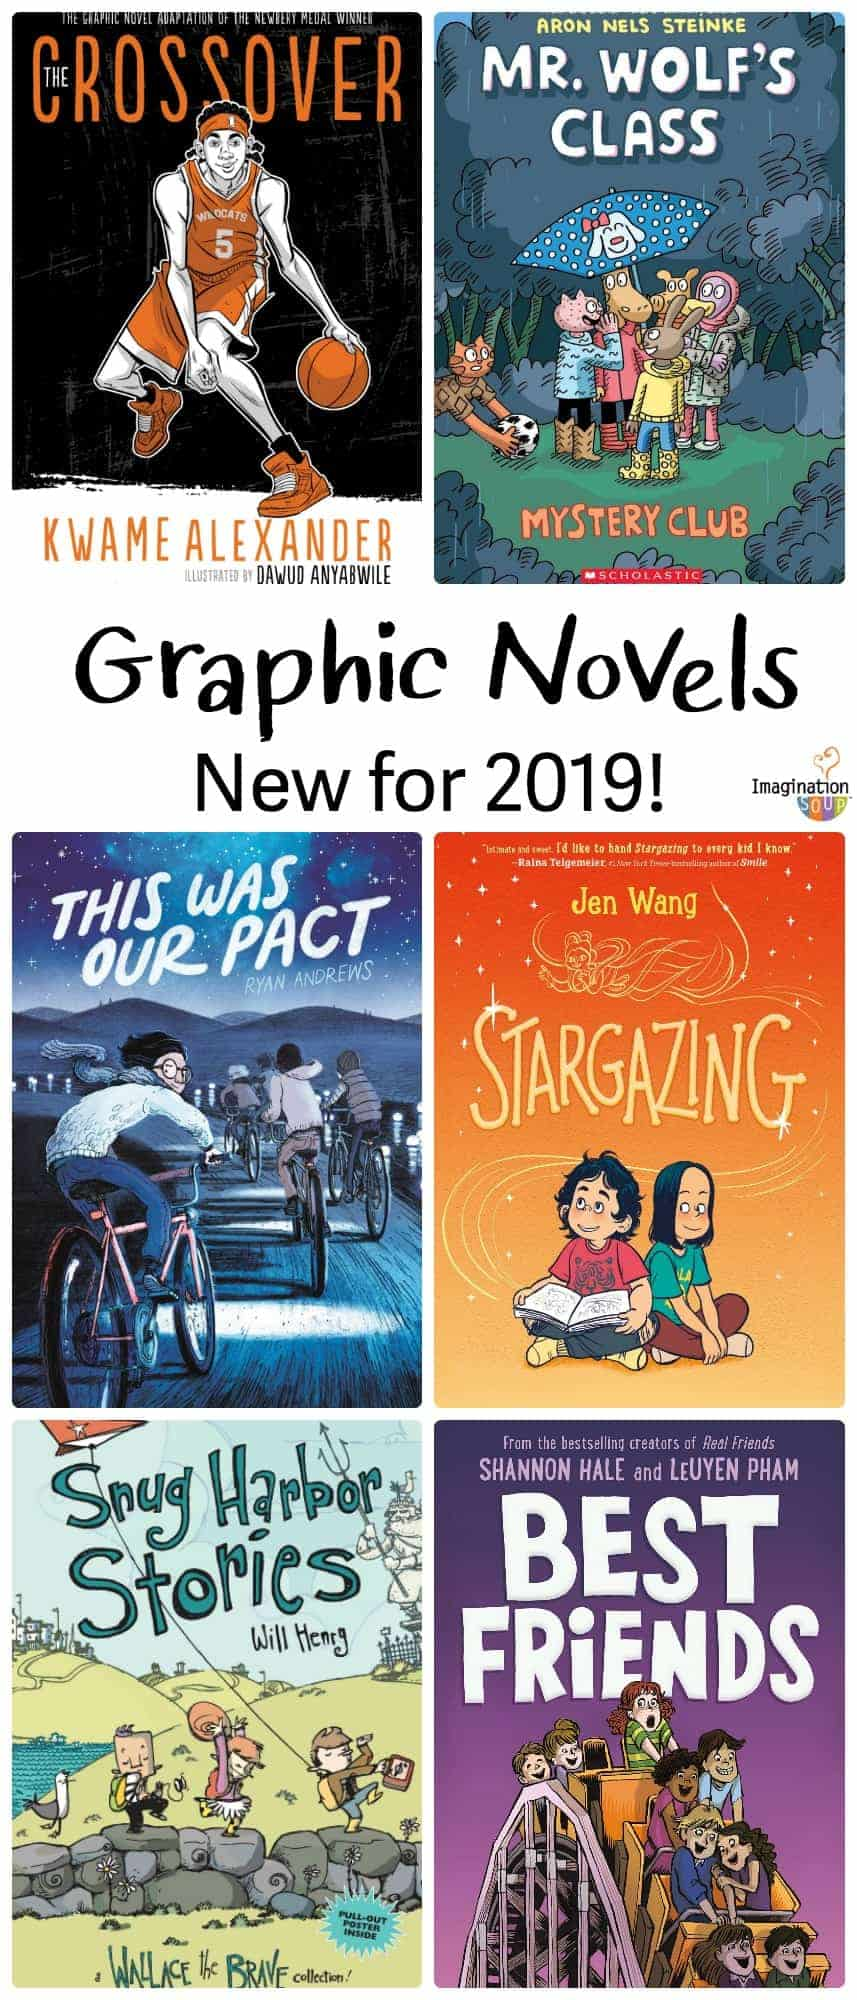 6 New Graphic Novels for Readers Ages 6 - 12 (2019)